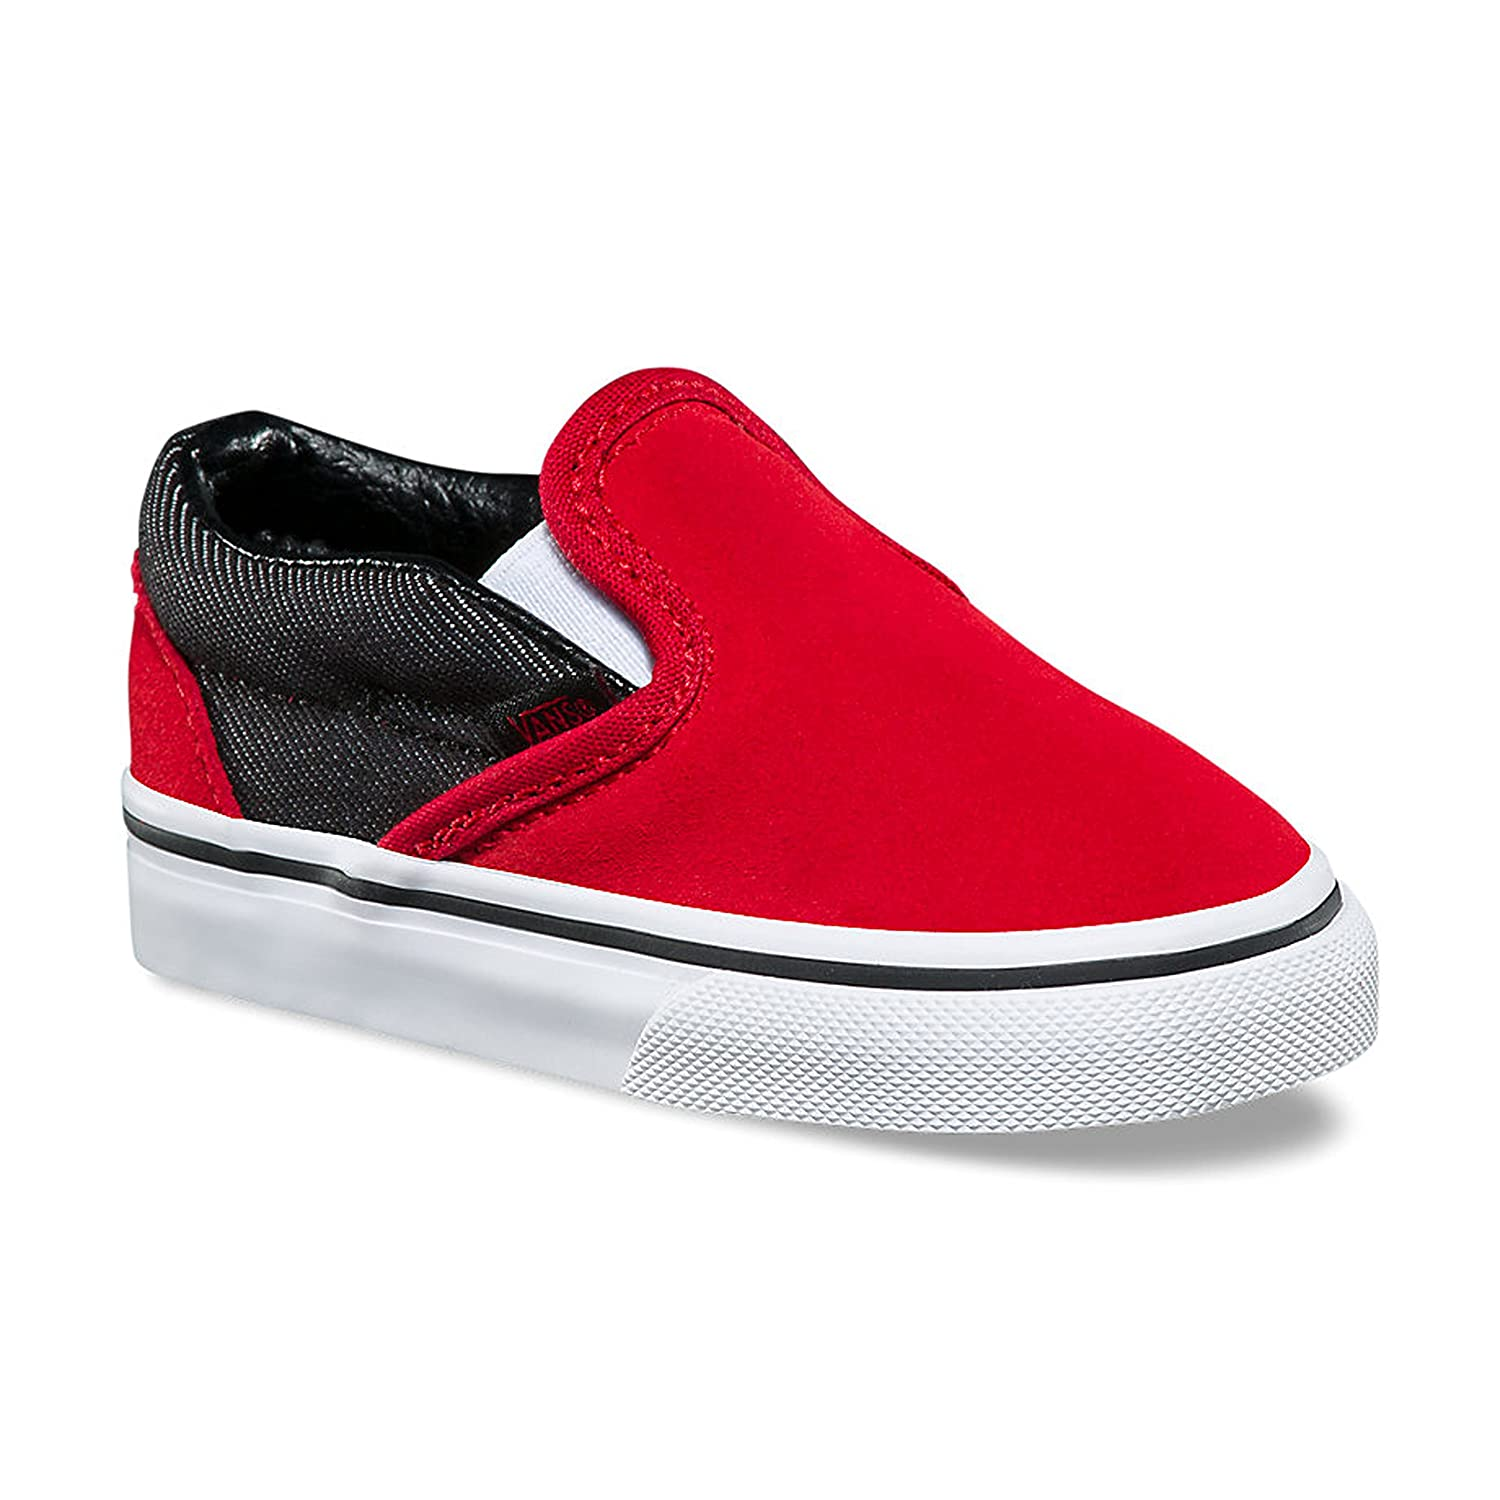 95b25c05c6 Vans Toddler Classic Slip-On VN0A32QJQ6W (Suede/Suiting) Racing Red/Black  Denim Skate Shoes